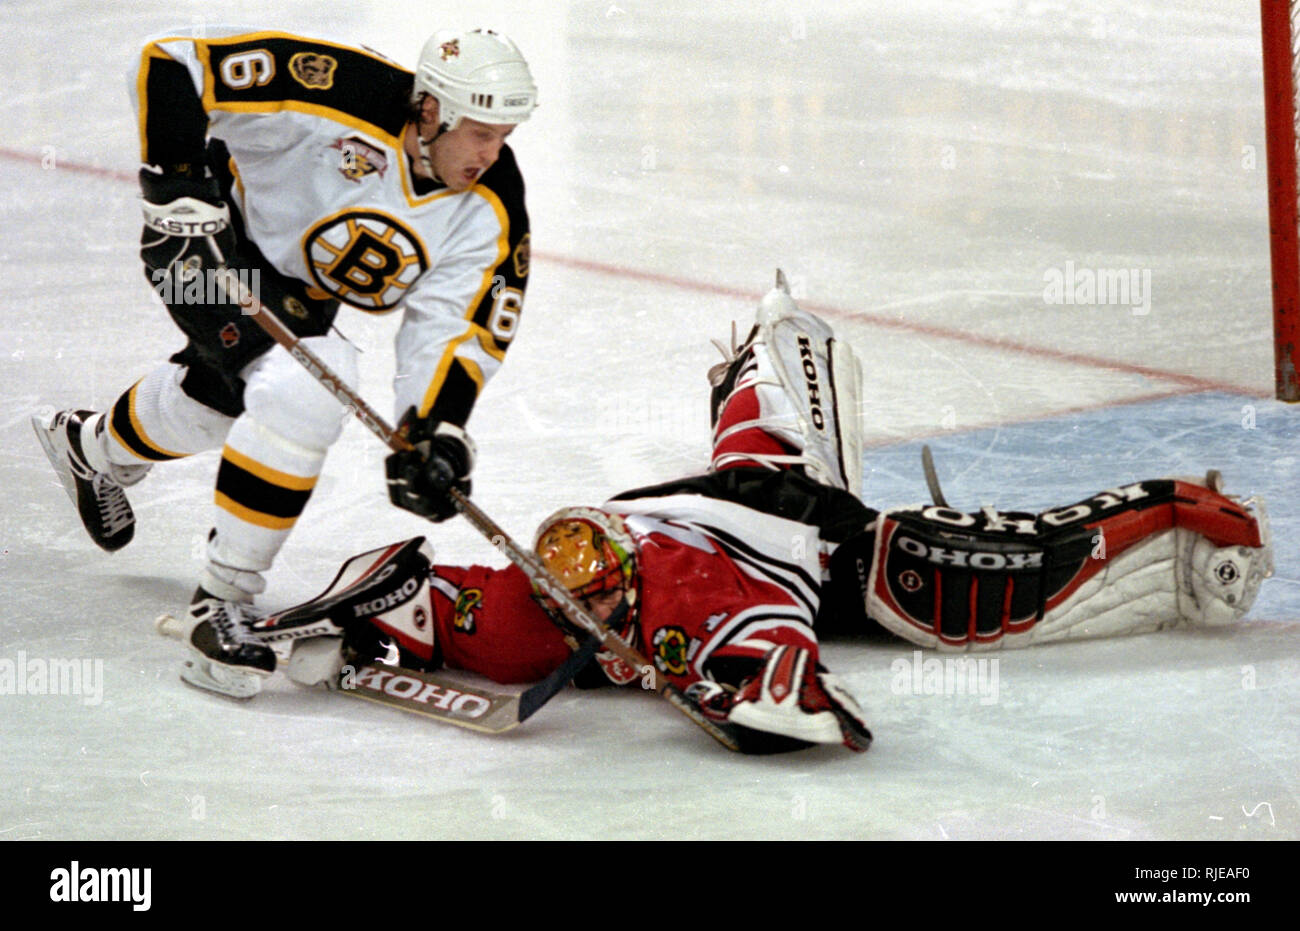 Chicago Black Hawks goalie Jocelyn Thibault makes the save on Boston Bruins Joe Thornton in game action at the Fleet Center in Boston Ma USA March 25,1999 photo by bill belknap Stock Photo